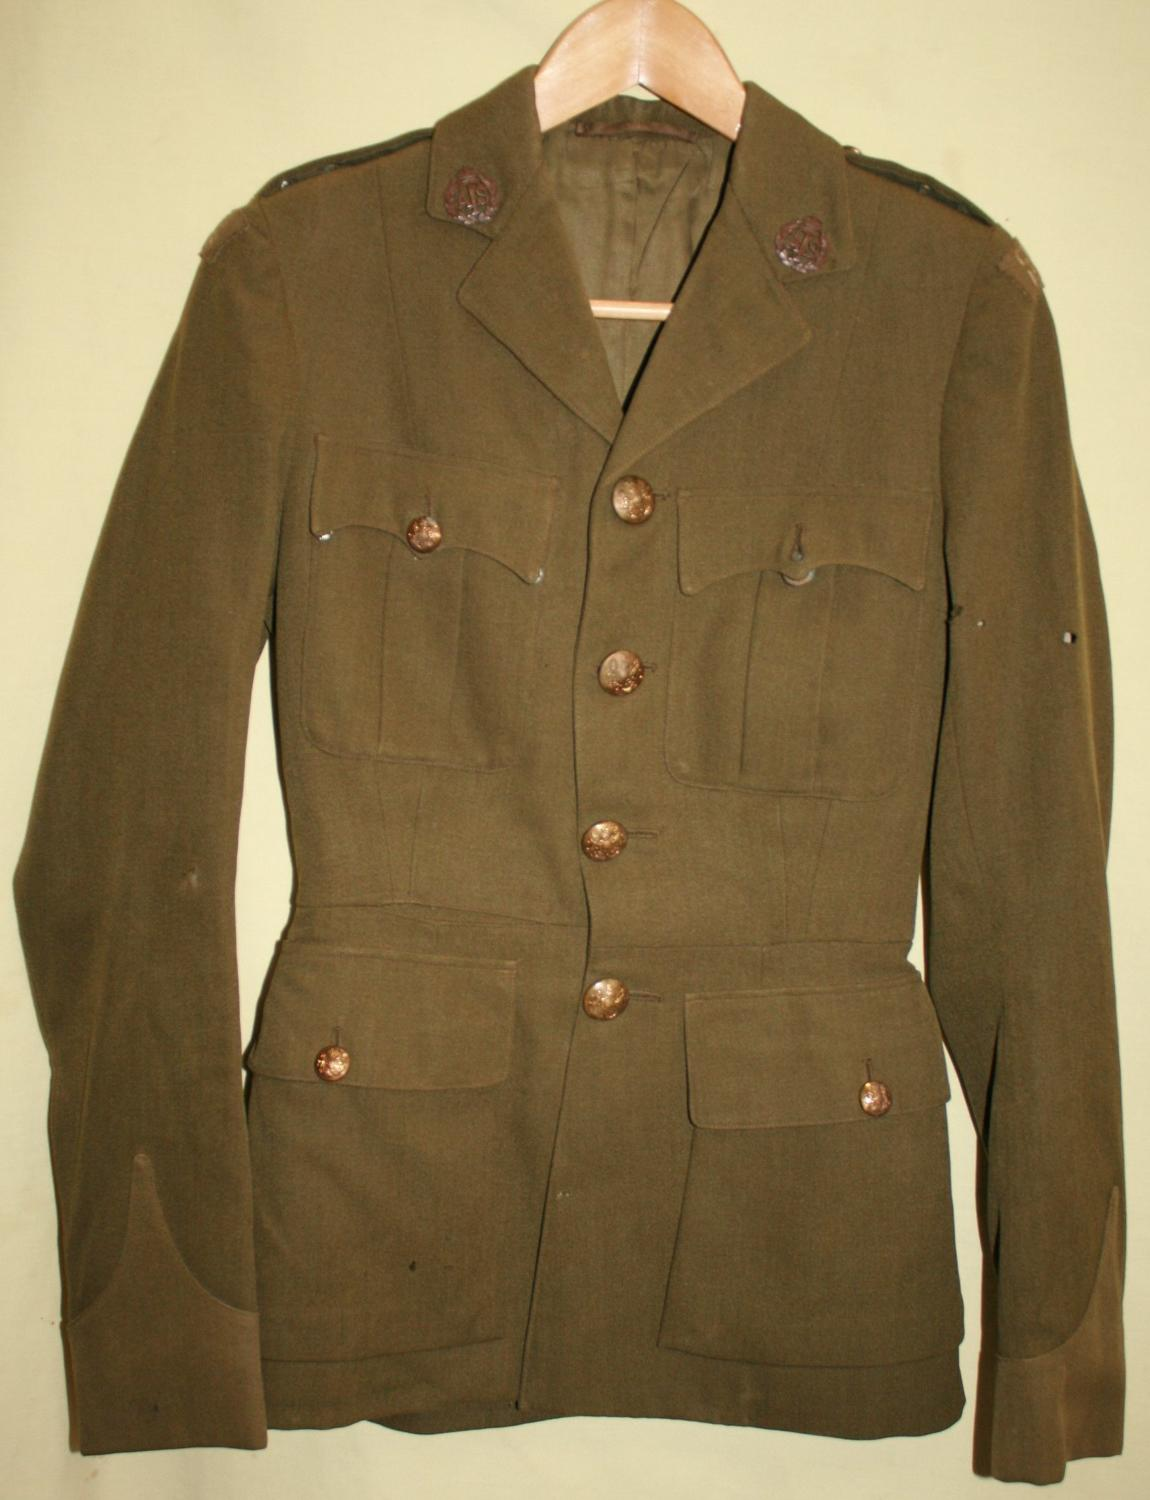 A WWII ATS OFFICERS CHANNEL ISLANDS UNIFORM